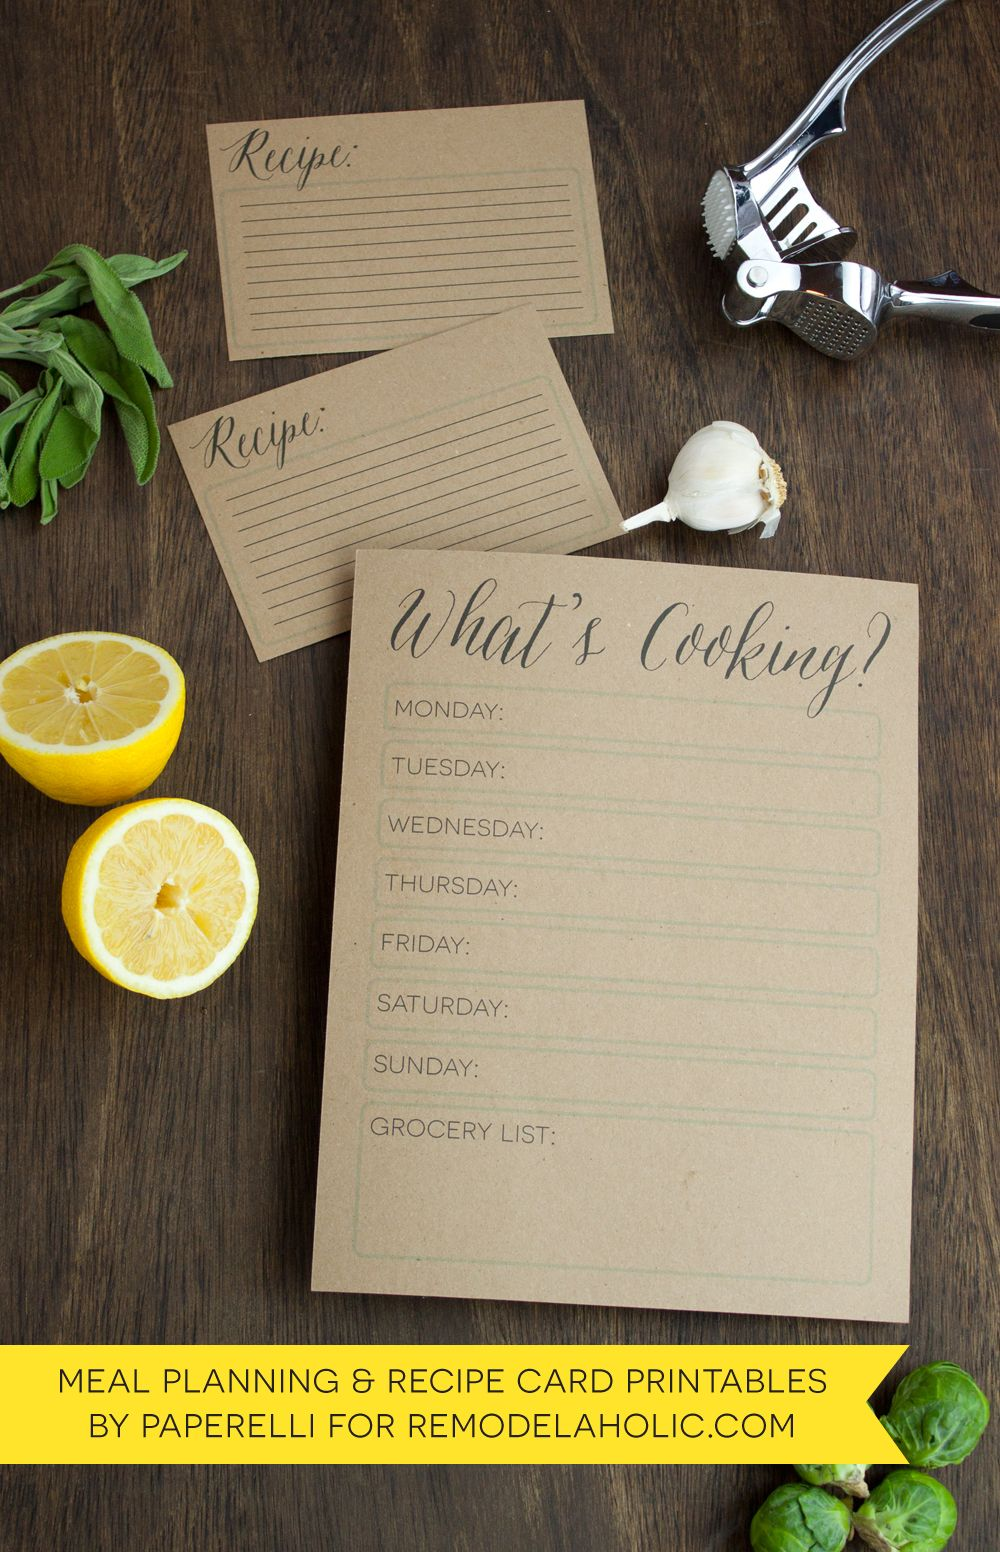 Love this inspiration to plan ahead for meals. Makes cooking less stressful = more quality time with the family.  Weekly Menu Planner + Recipe Card by @Paperelli for @Remodelaholic